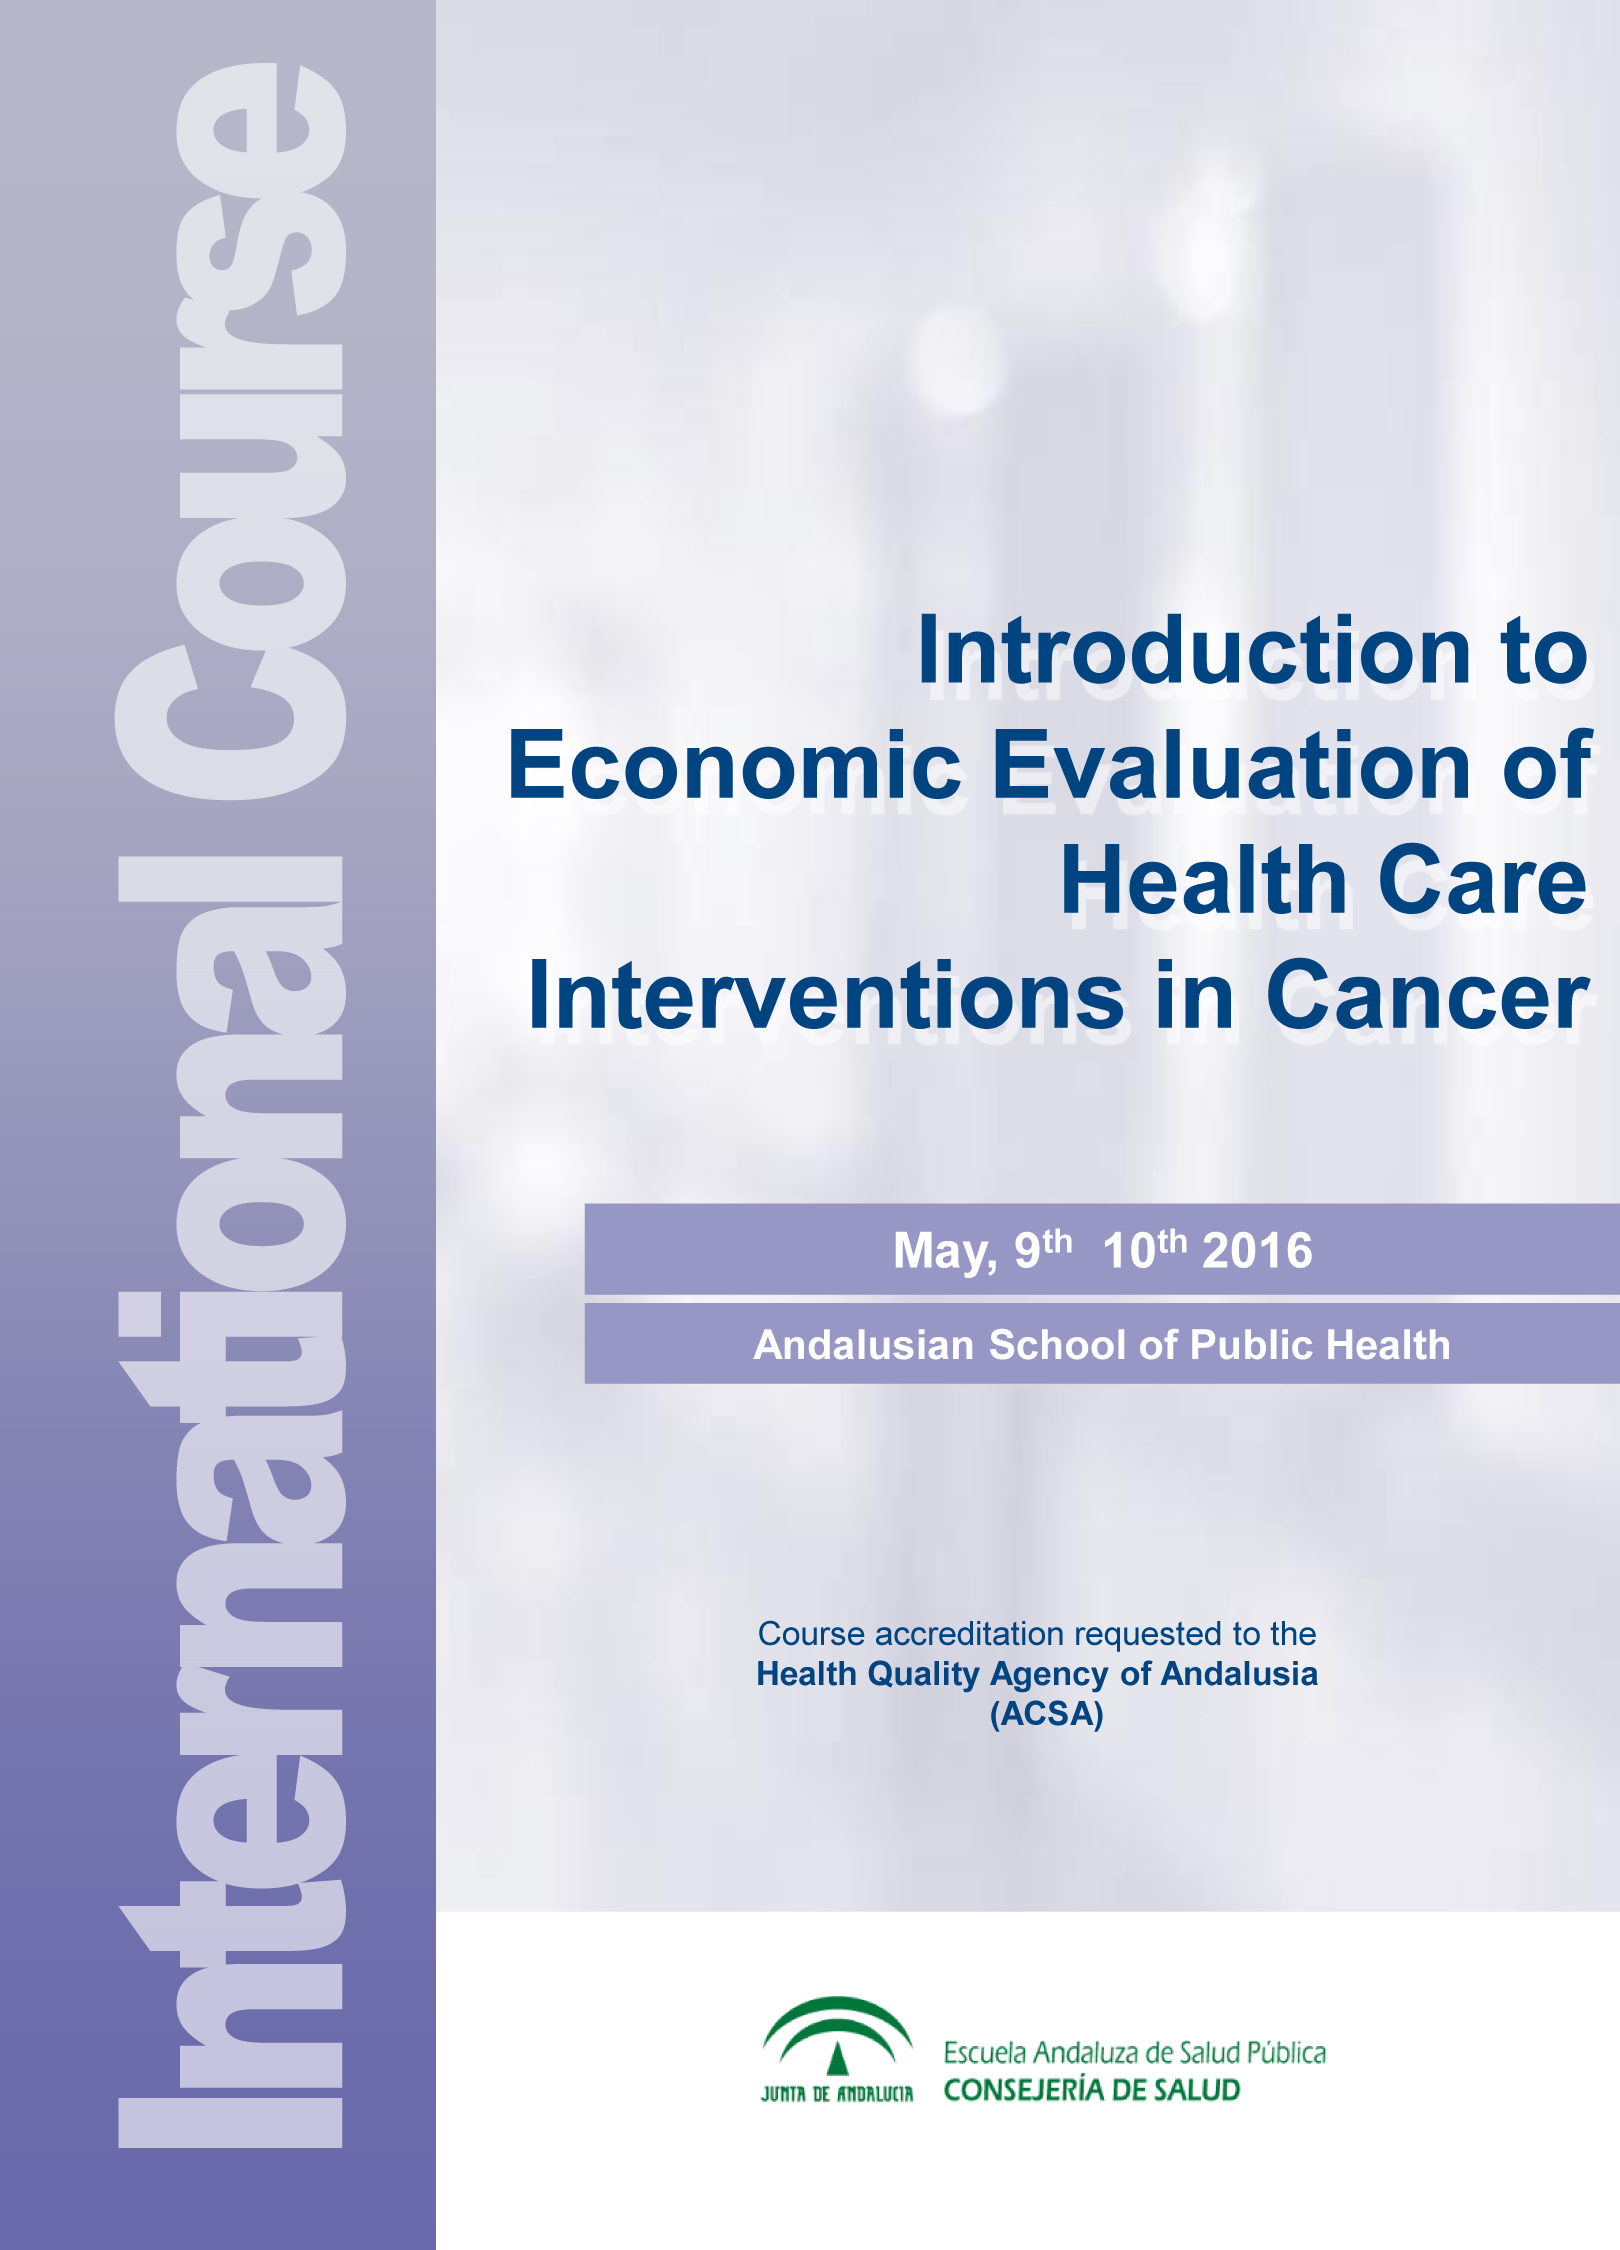 Introduction to Economic Evaluation of Health Care Interventions